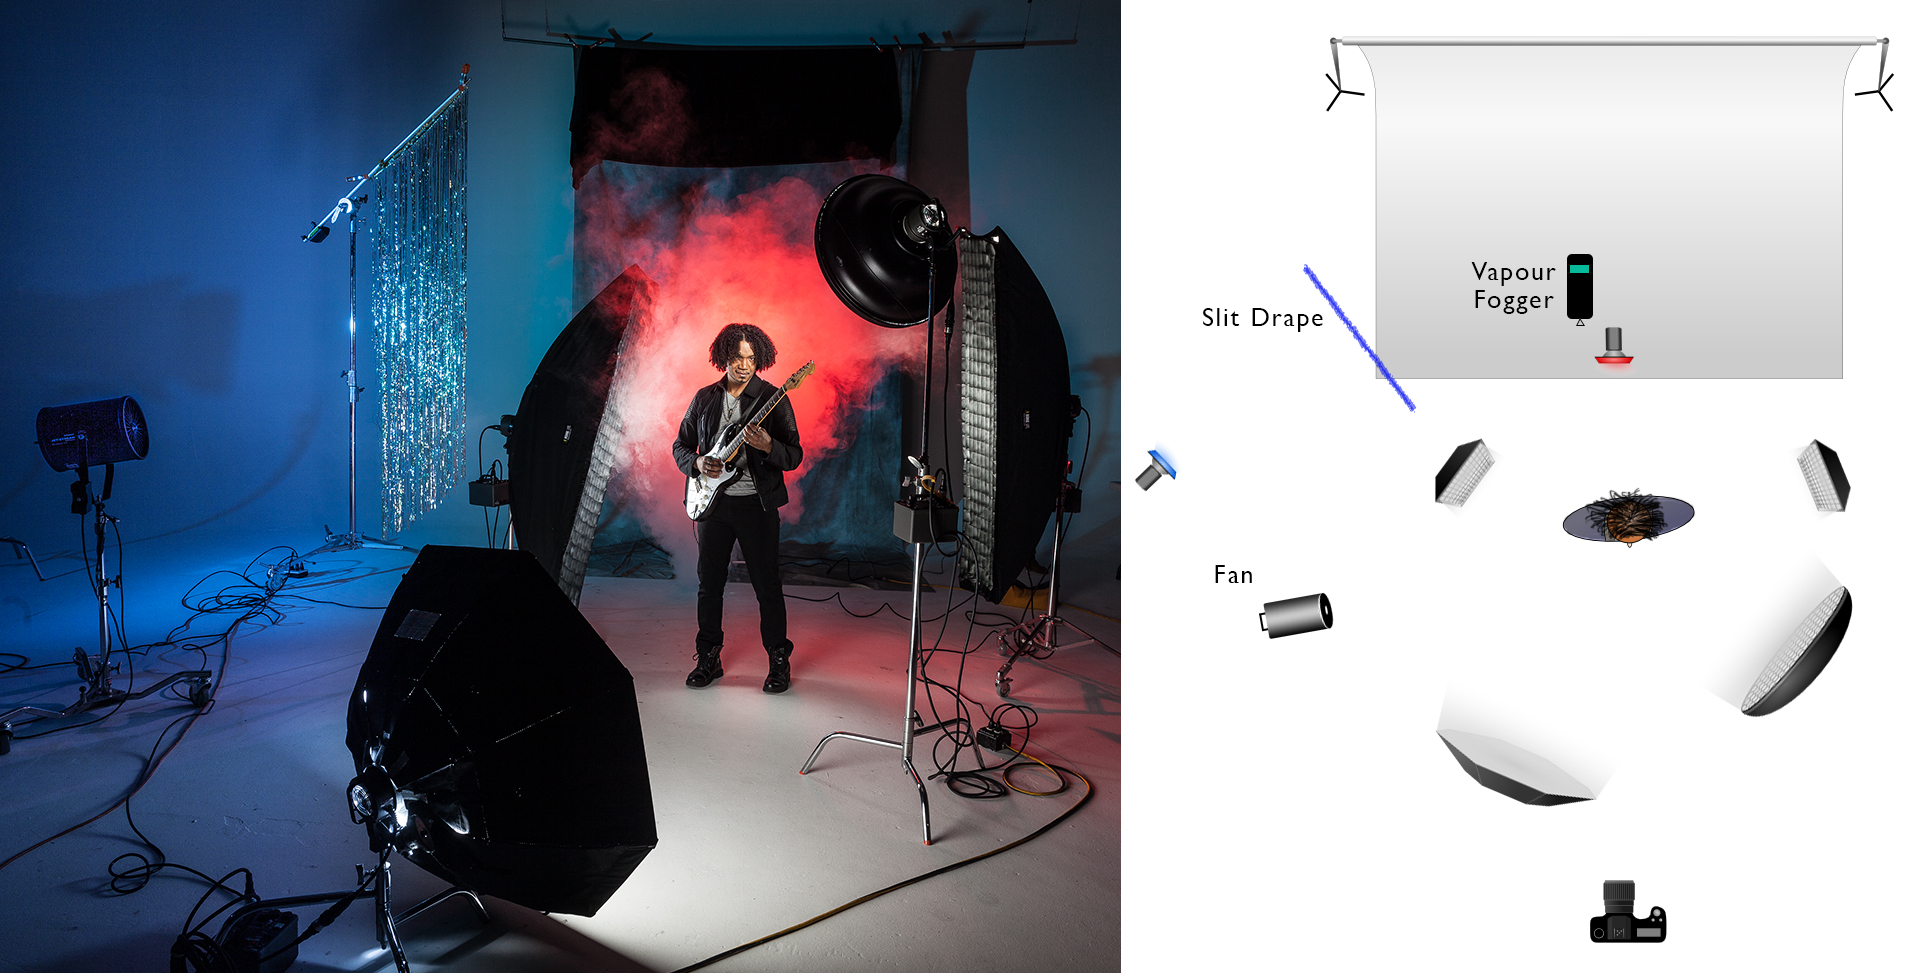 BTS-Jeff Paige Music Portrait Diagram by Kevin Ames